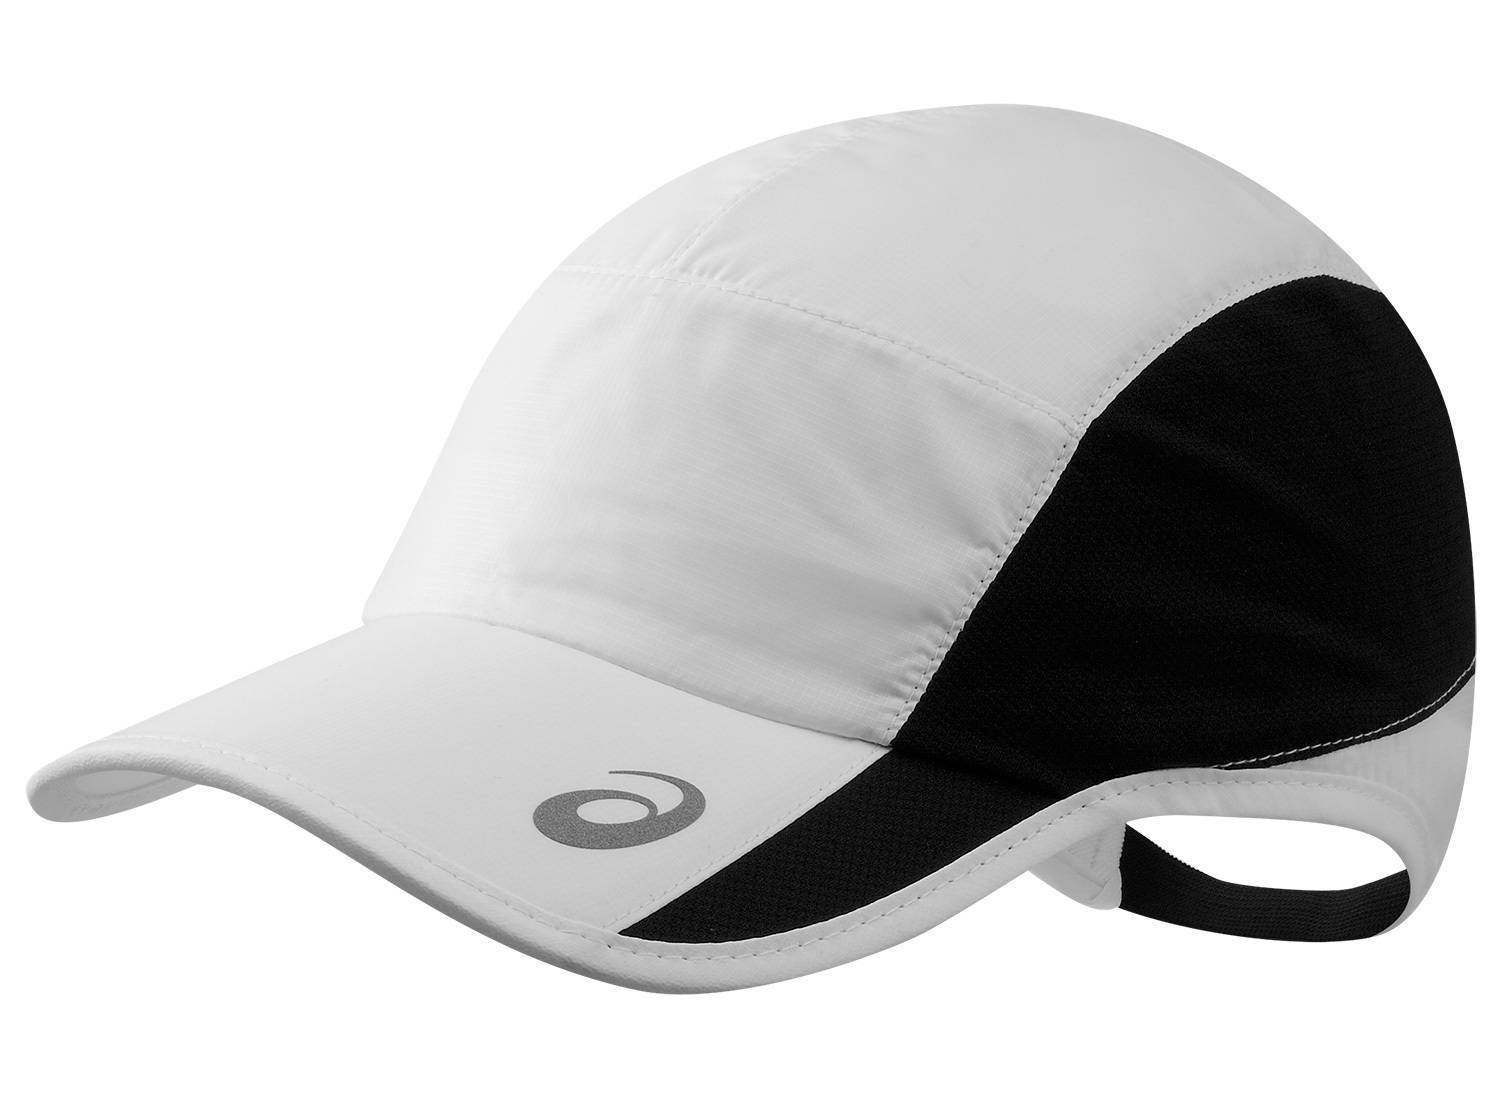 Бейсболка для бега Asics Performance Cap (132059 0001) белая